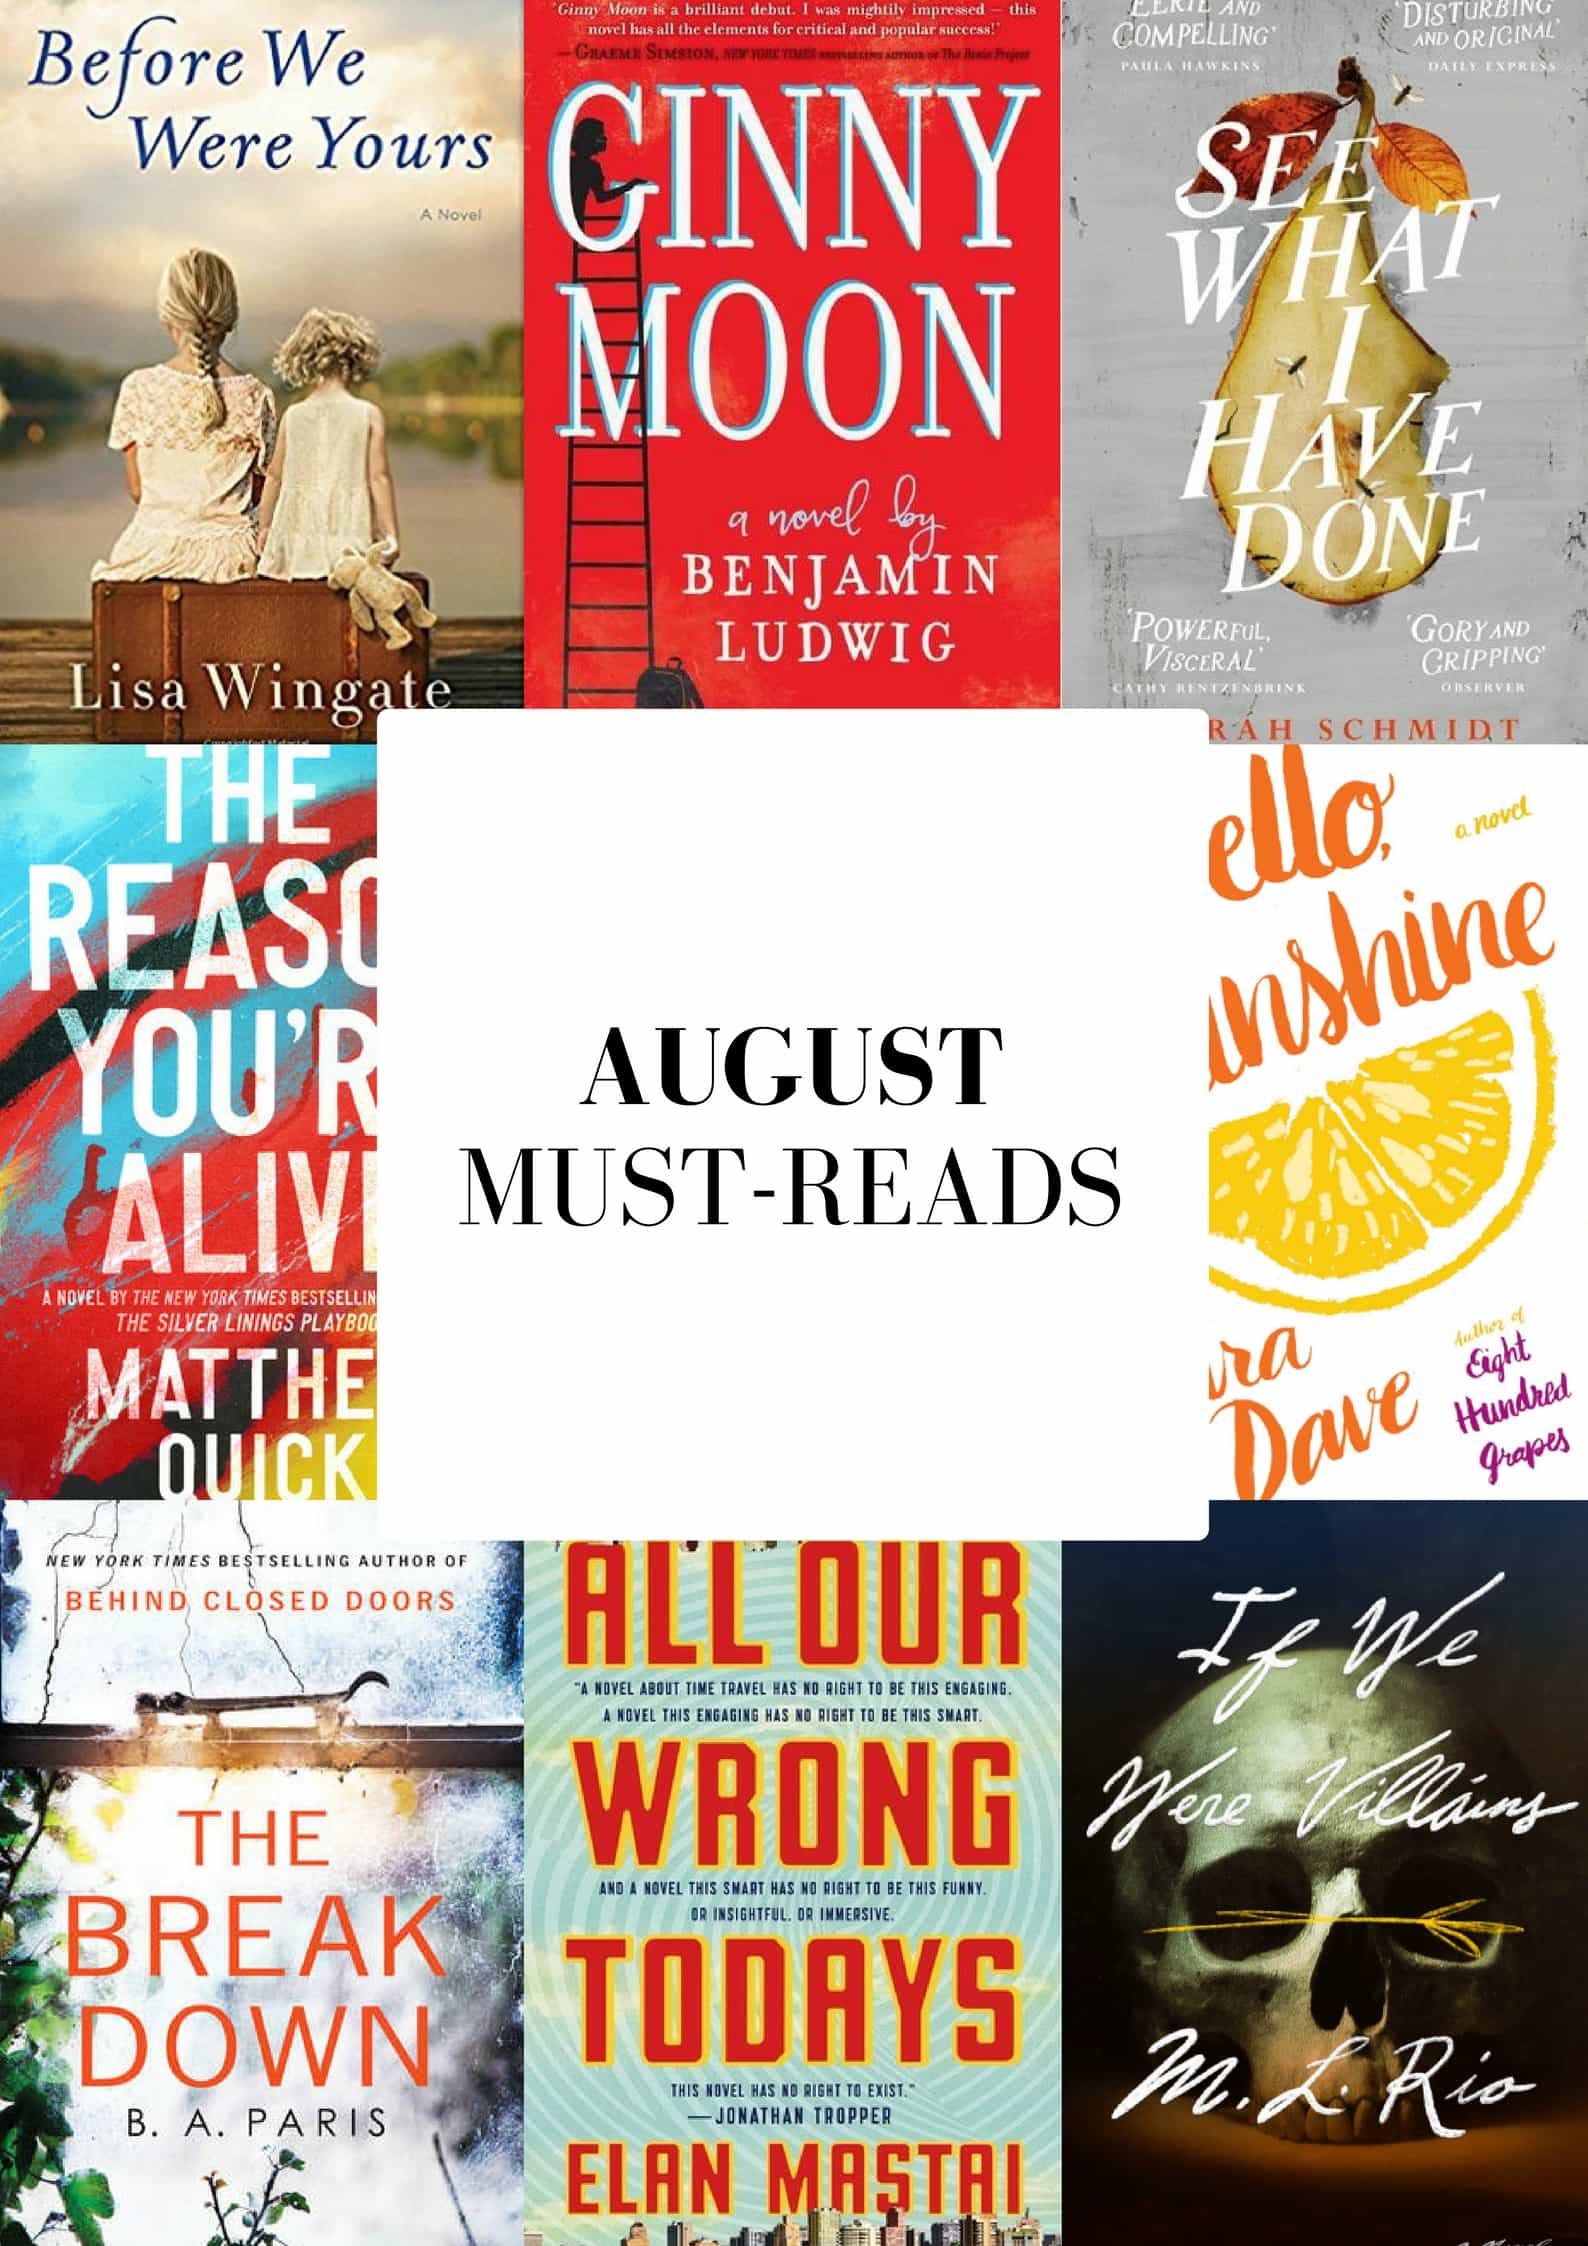 August 2017 Must-Reads